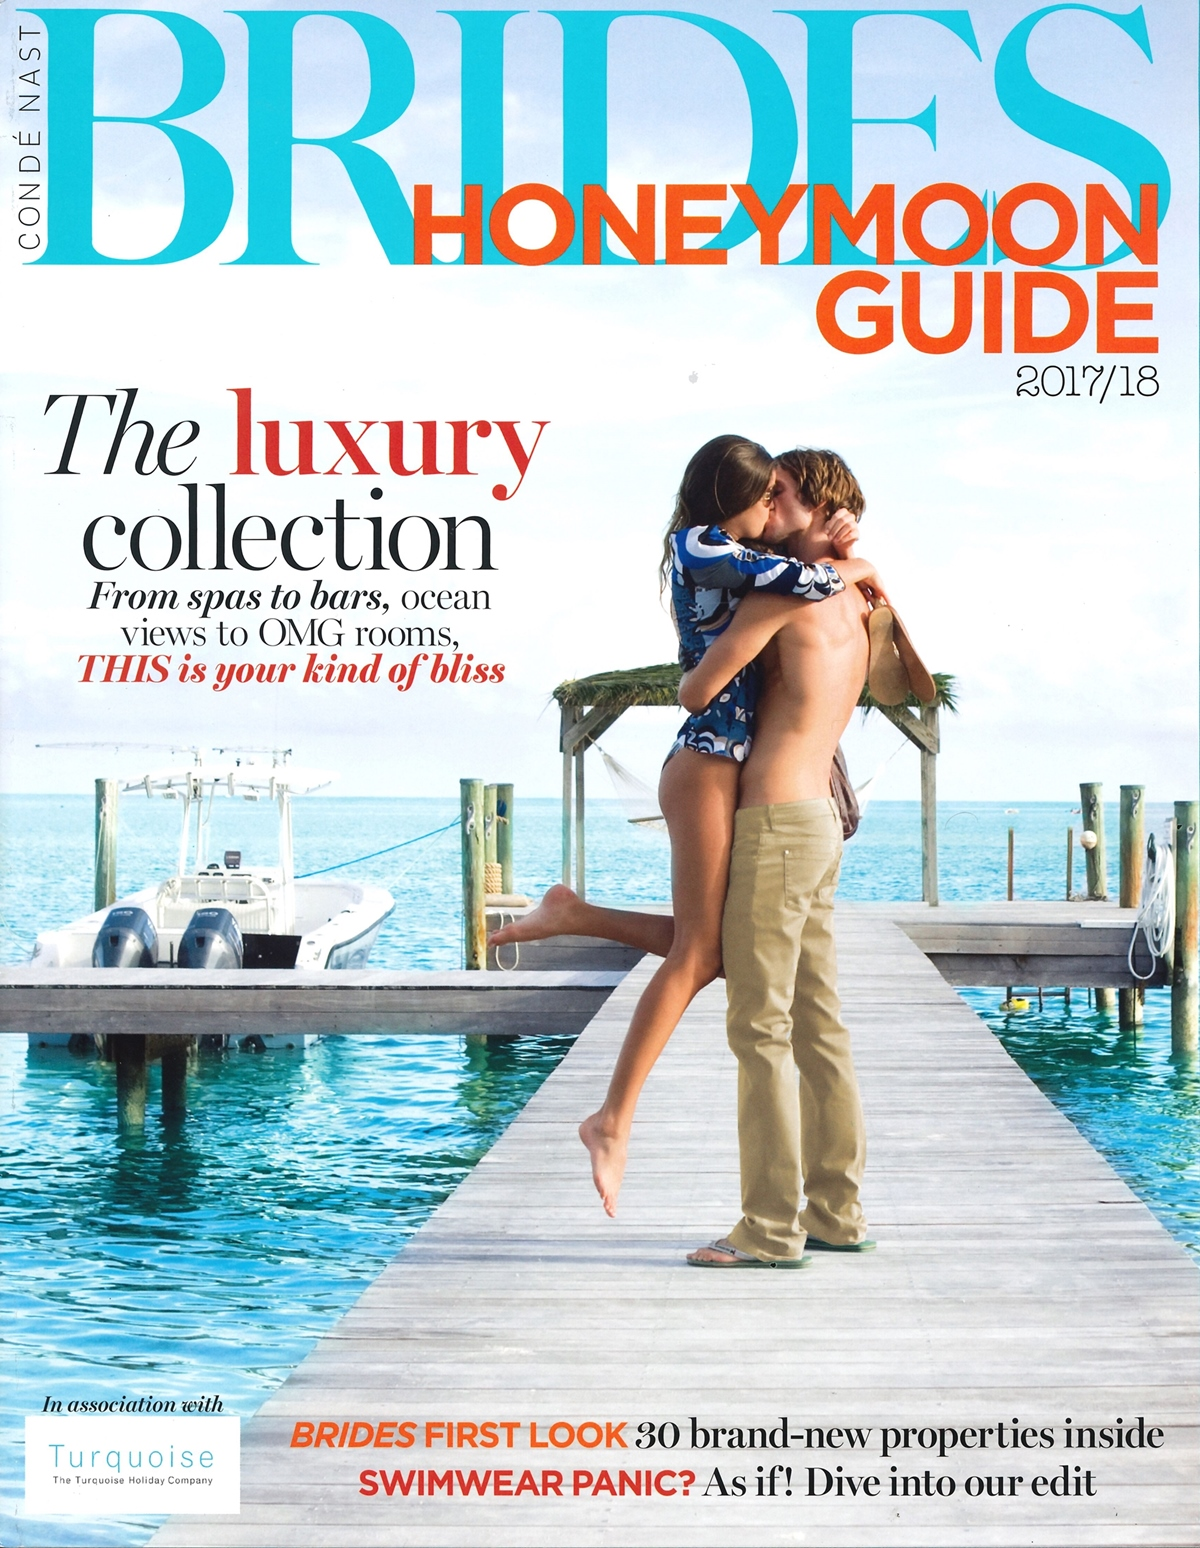 Conde Nast BRIDES Honeymoon Guide